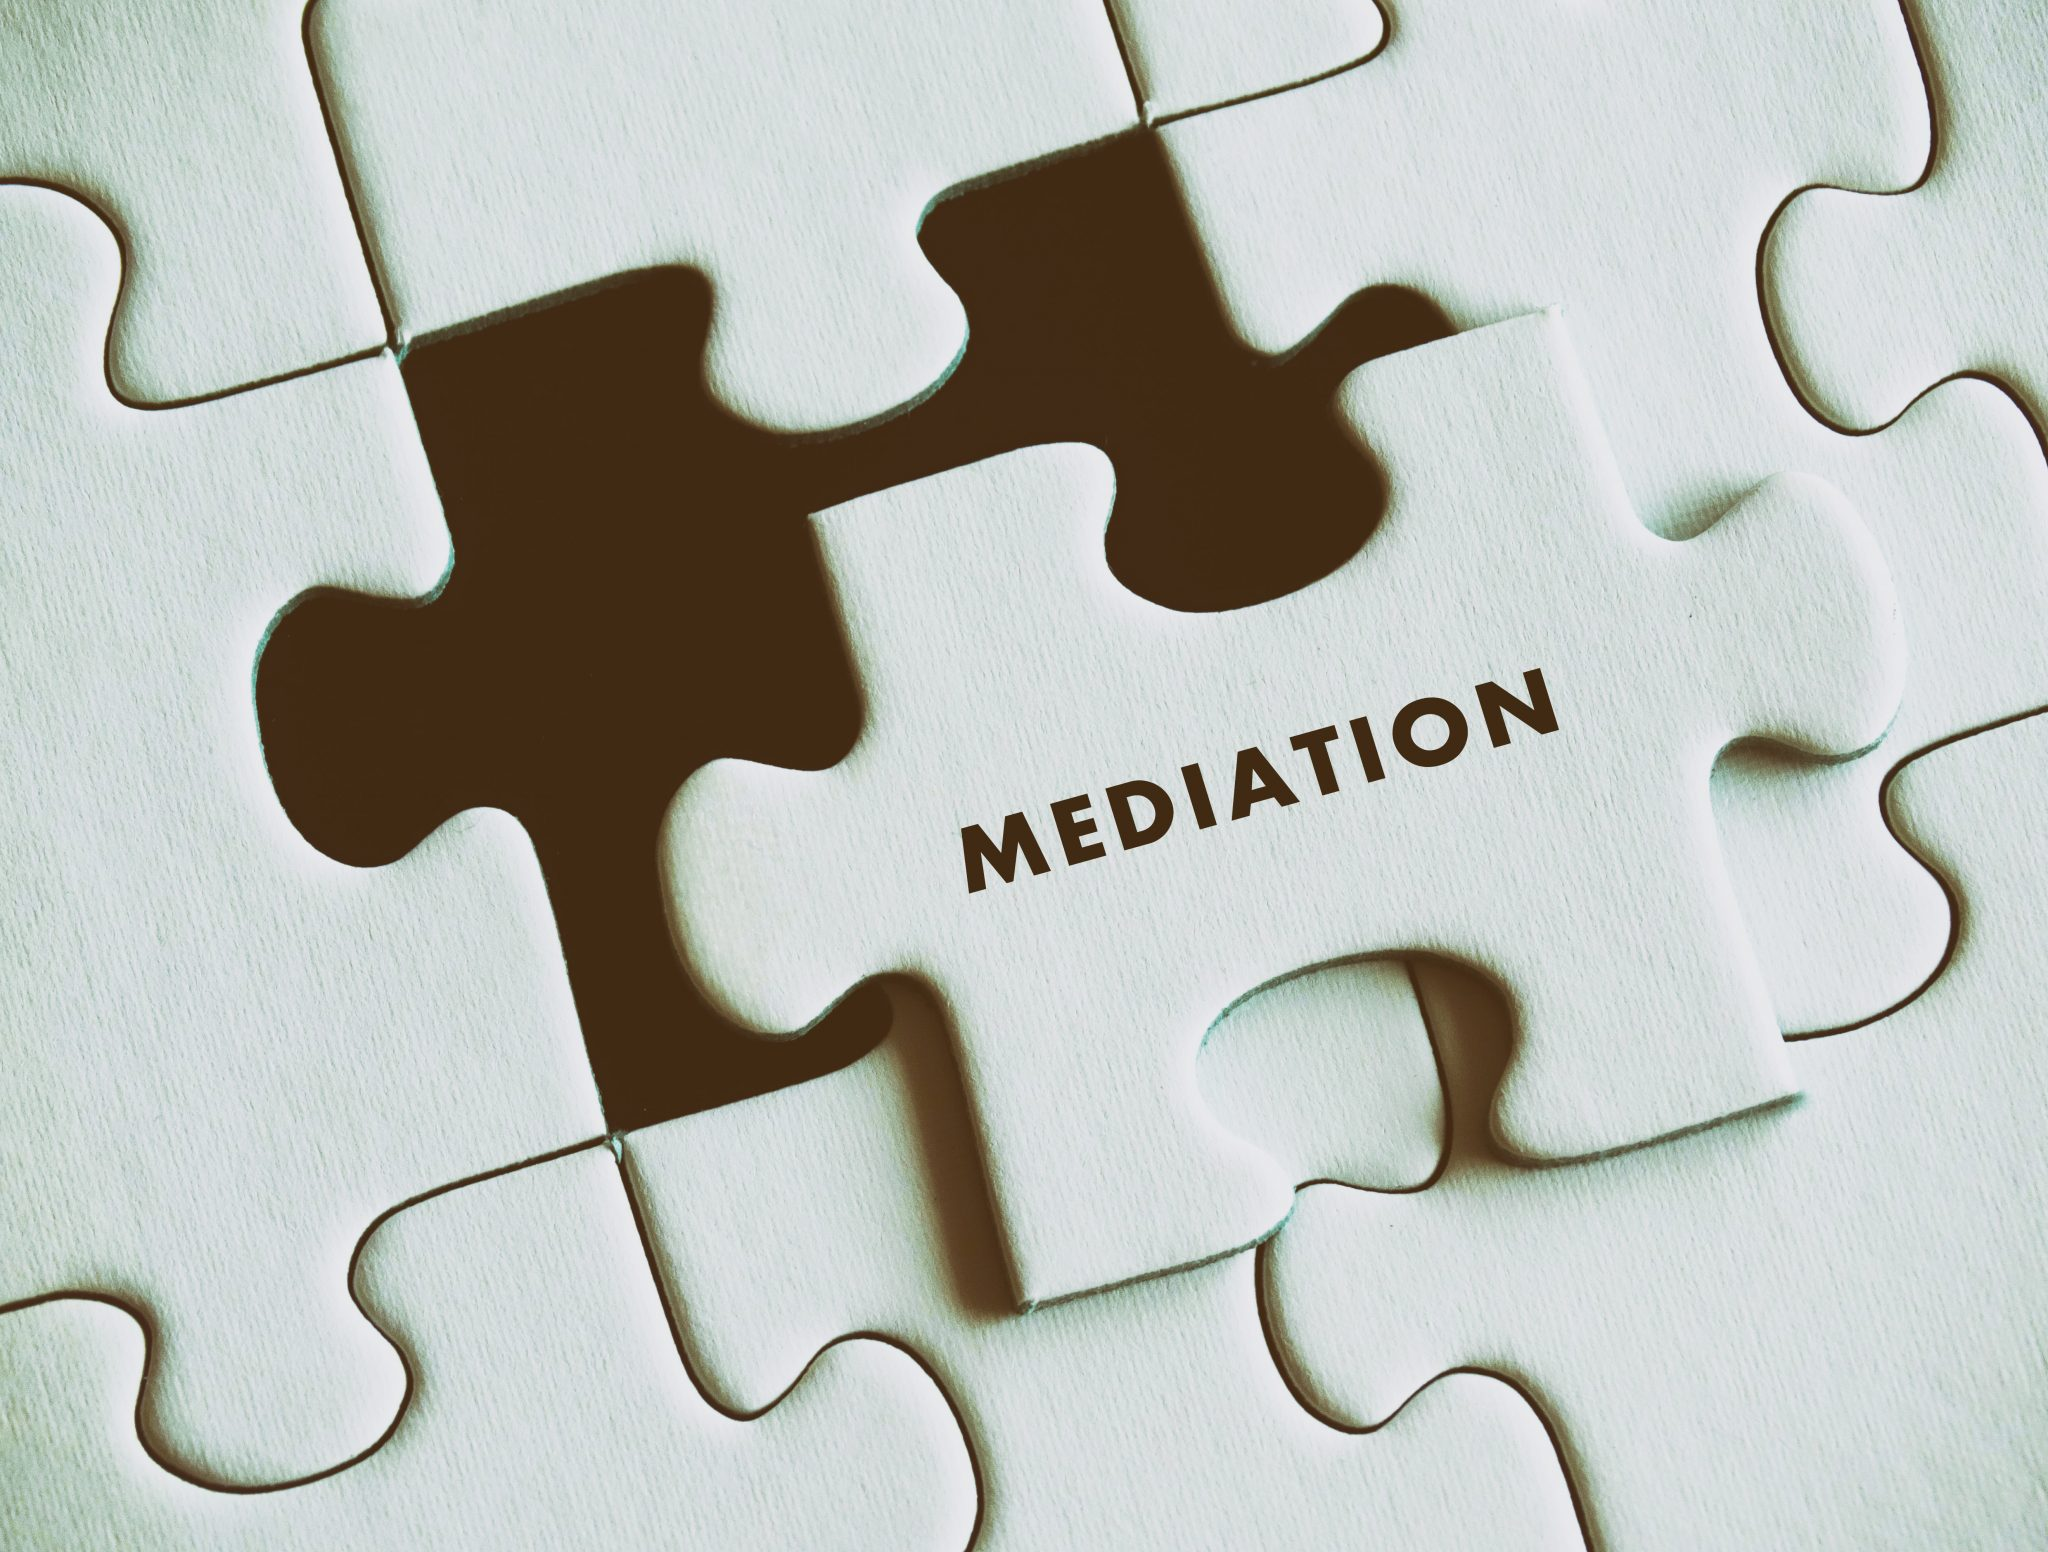 Be Wary Of Binding Mediation A Form Of Alternative Dispute Resolution